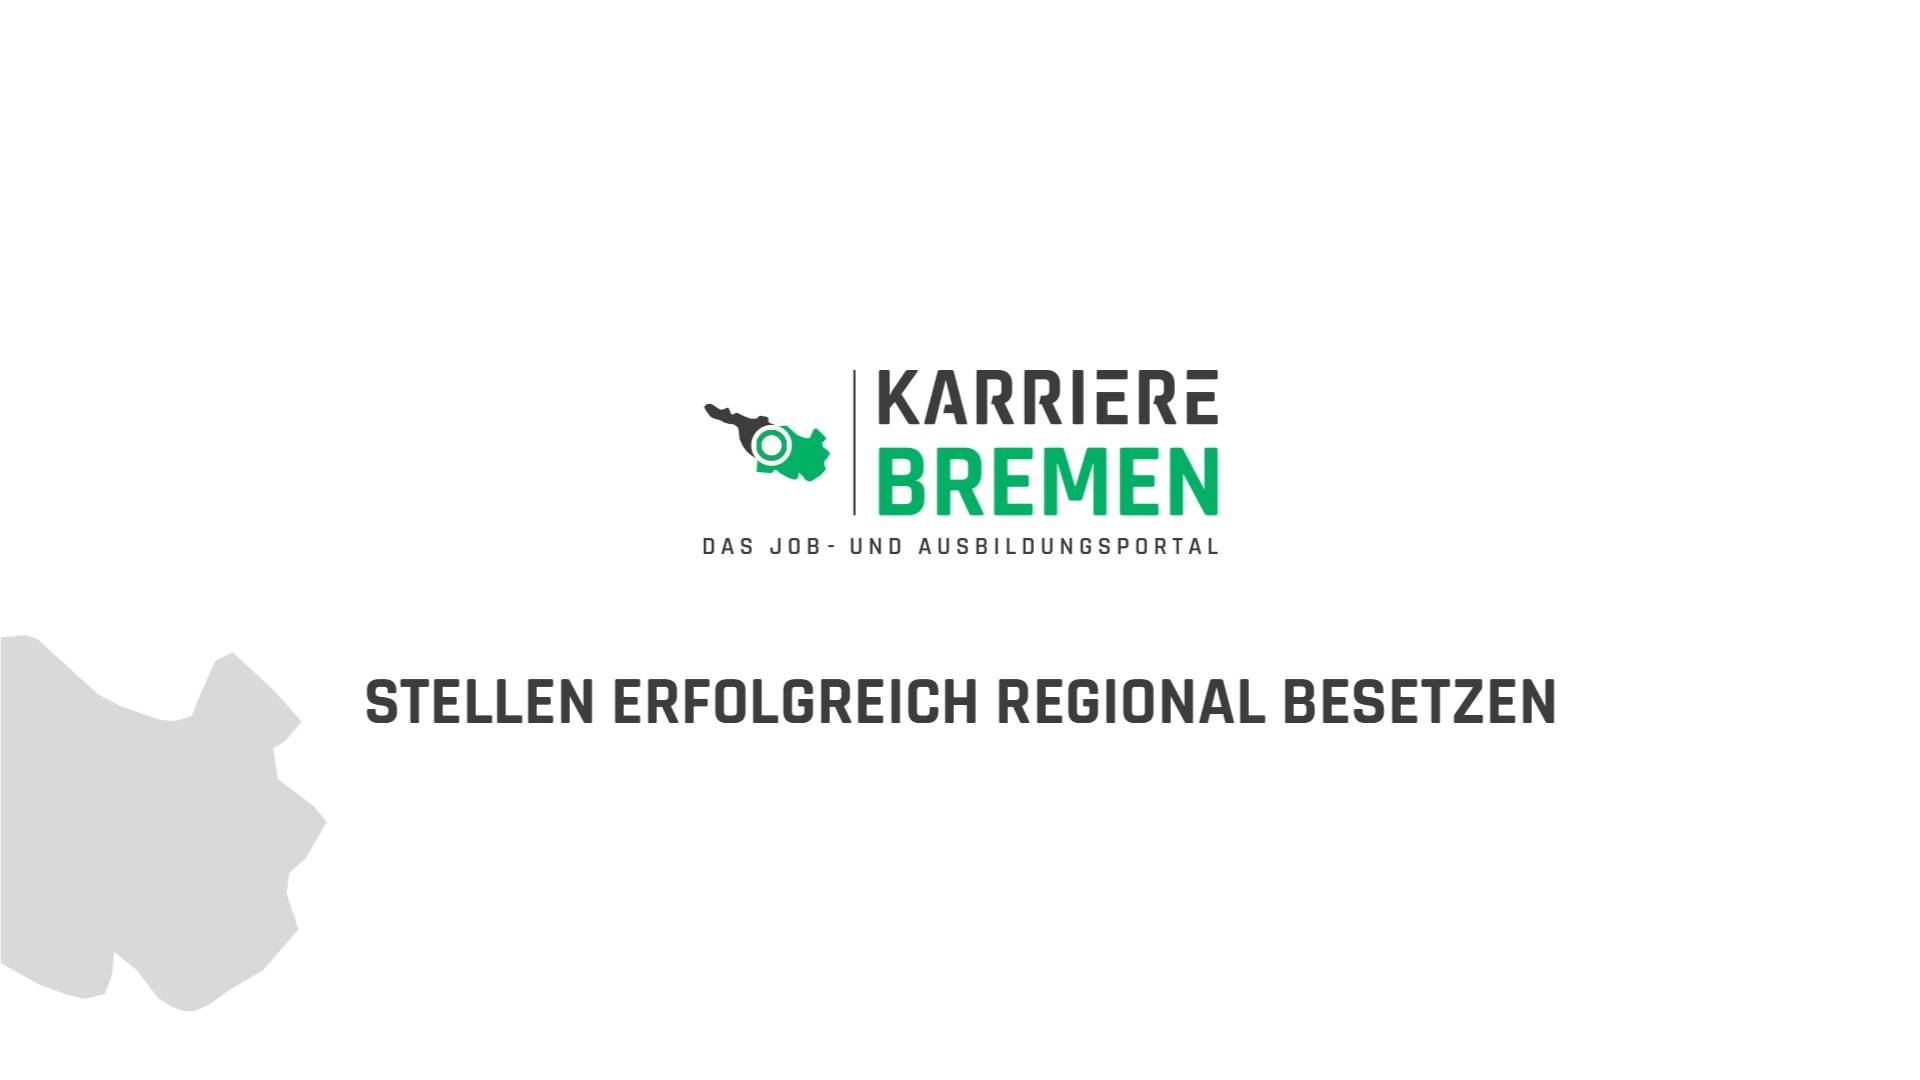 So funktioniert Karriere Bremen.